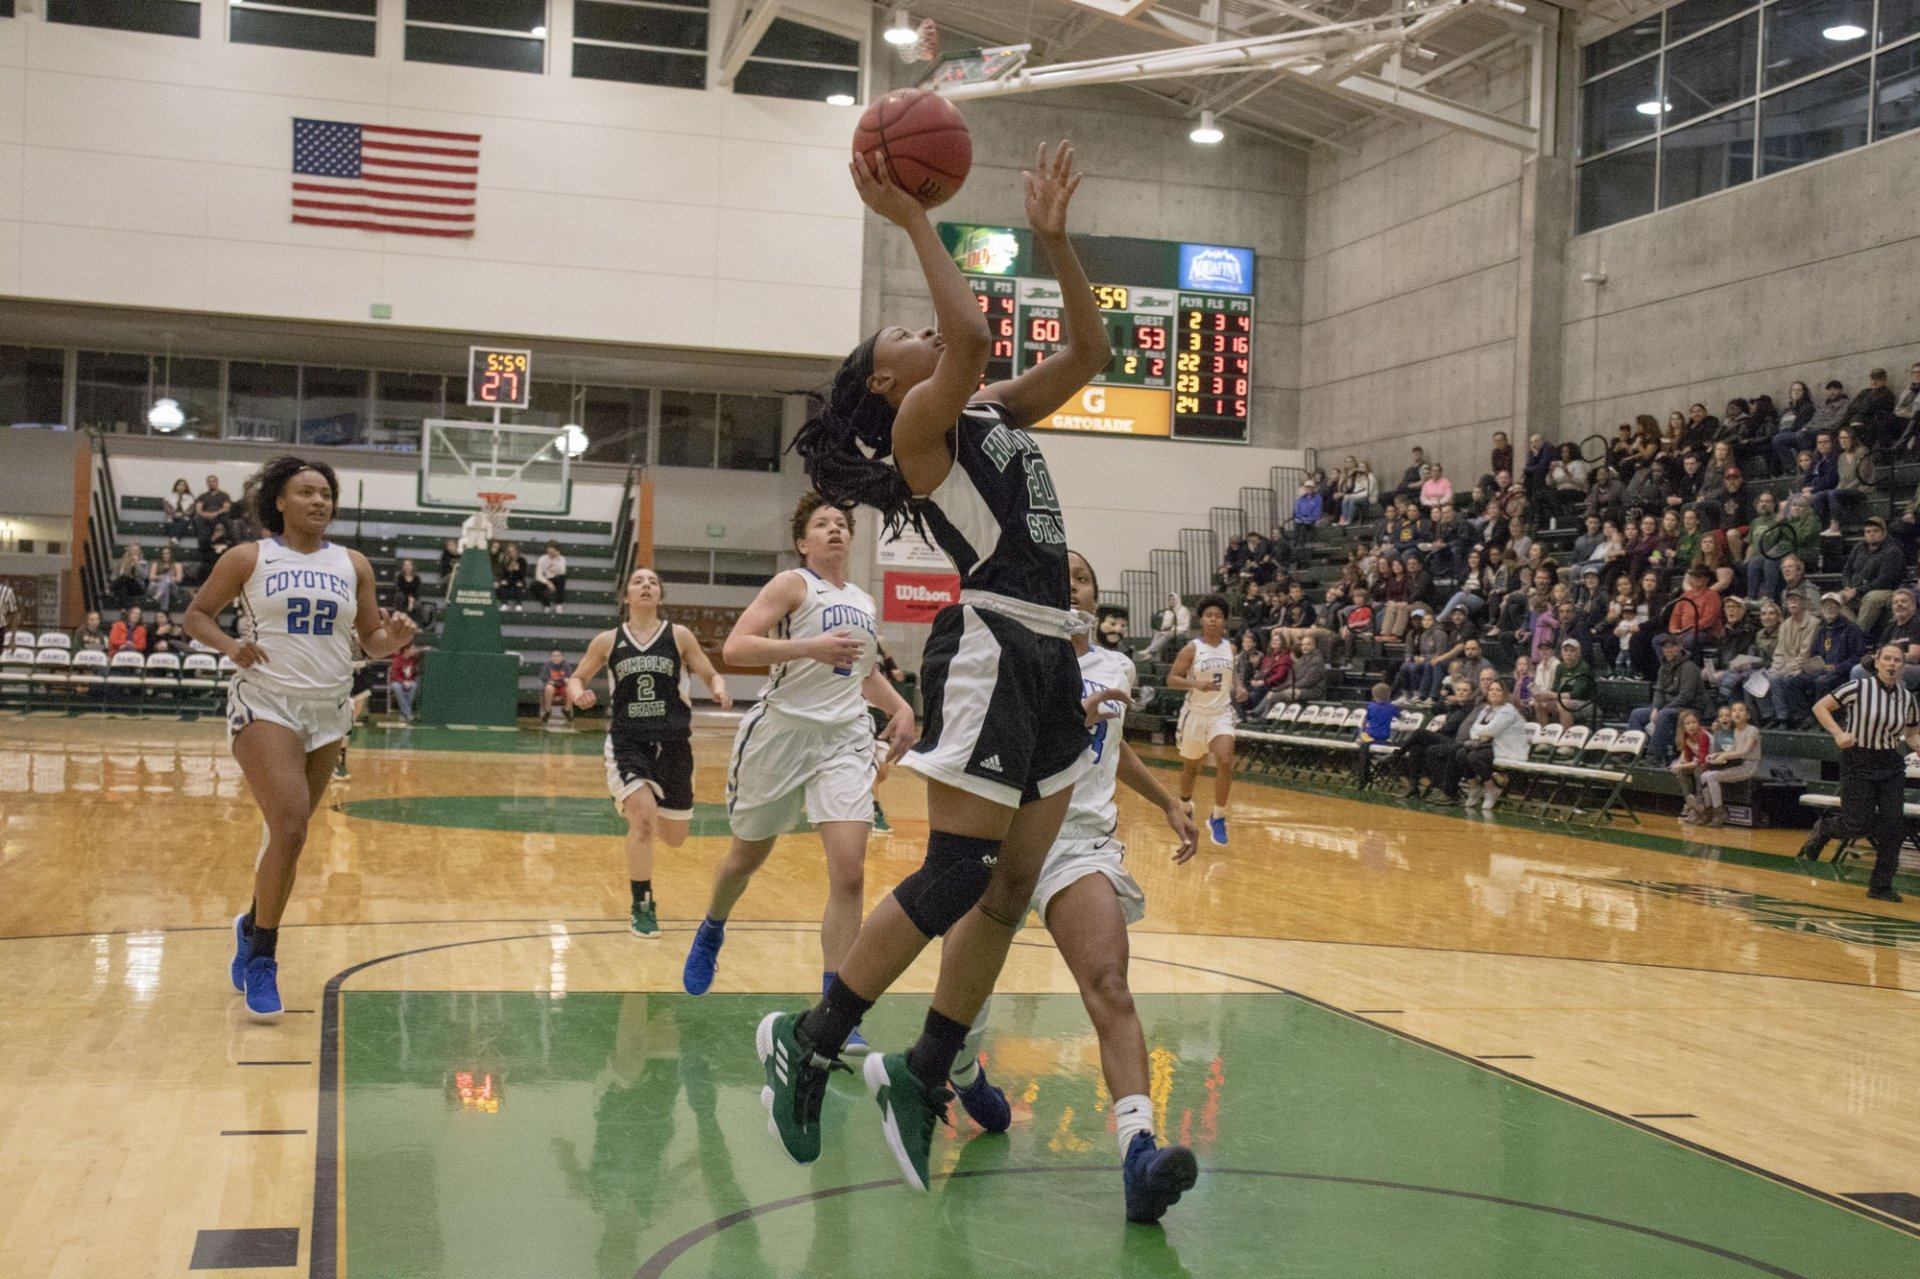 Junior Alexia Thrower hitting the breakaway layup Saturday. Thrower named CCAA player of the week averaging 25 points and 12.5 rebounds.